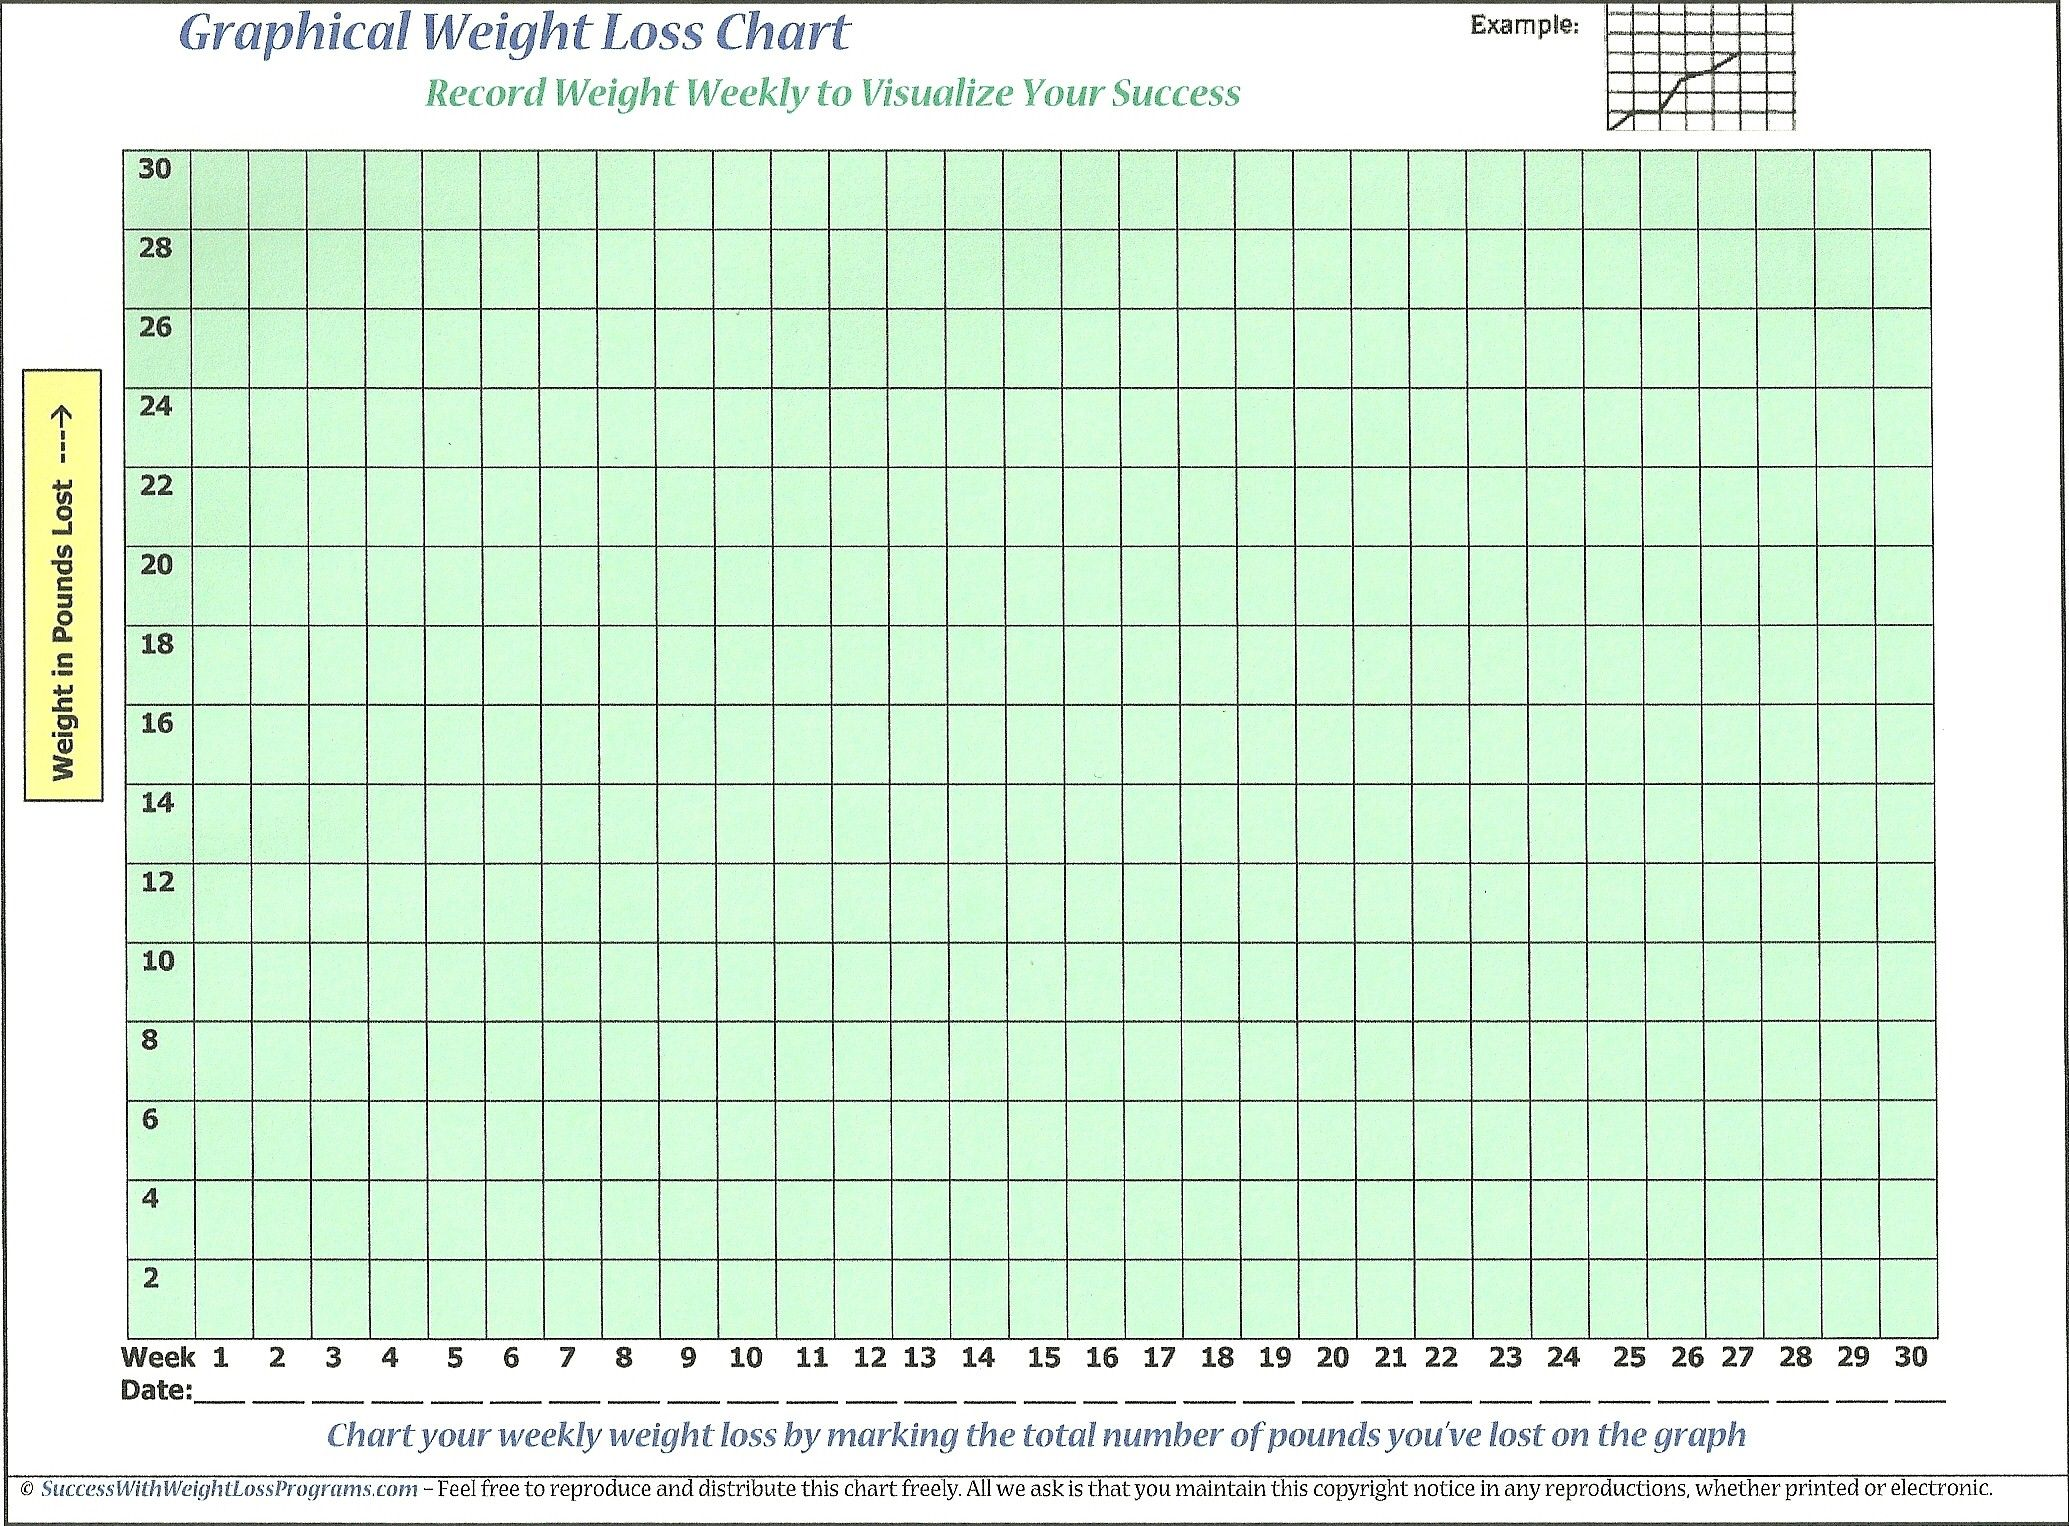 weight loss chart health and fitness pinterest weight loss